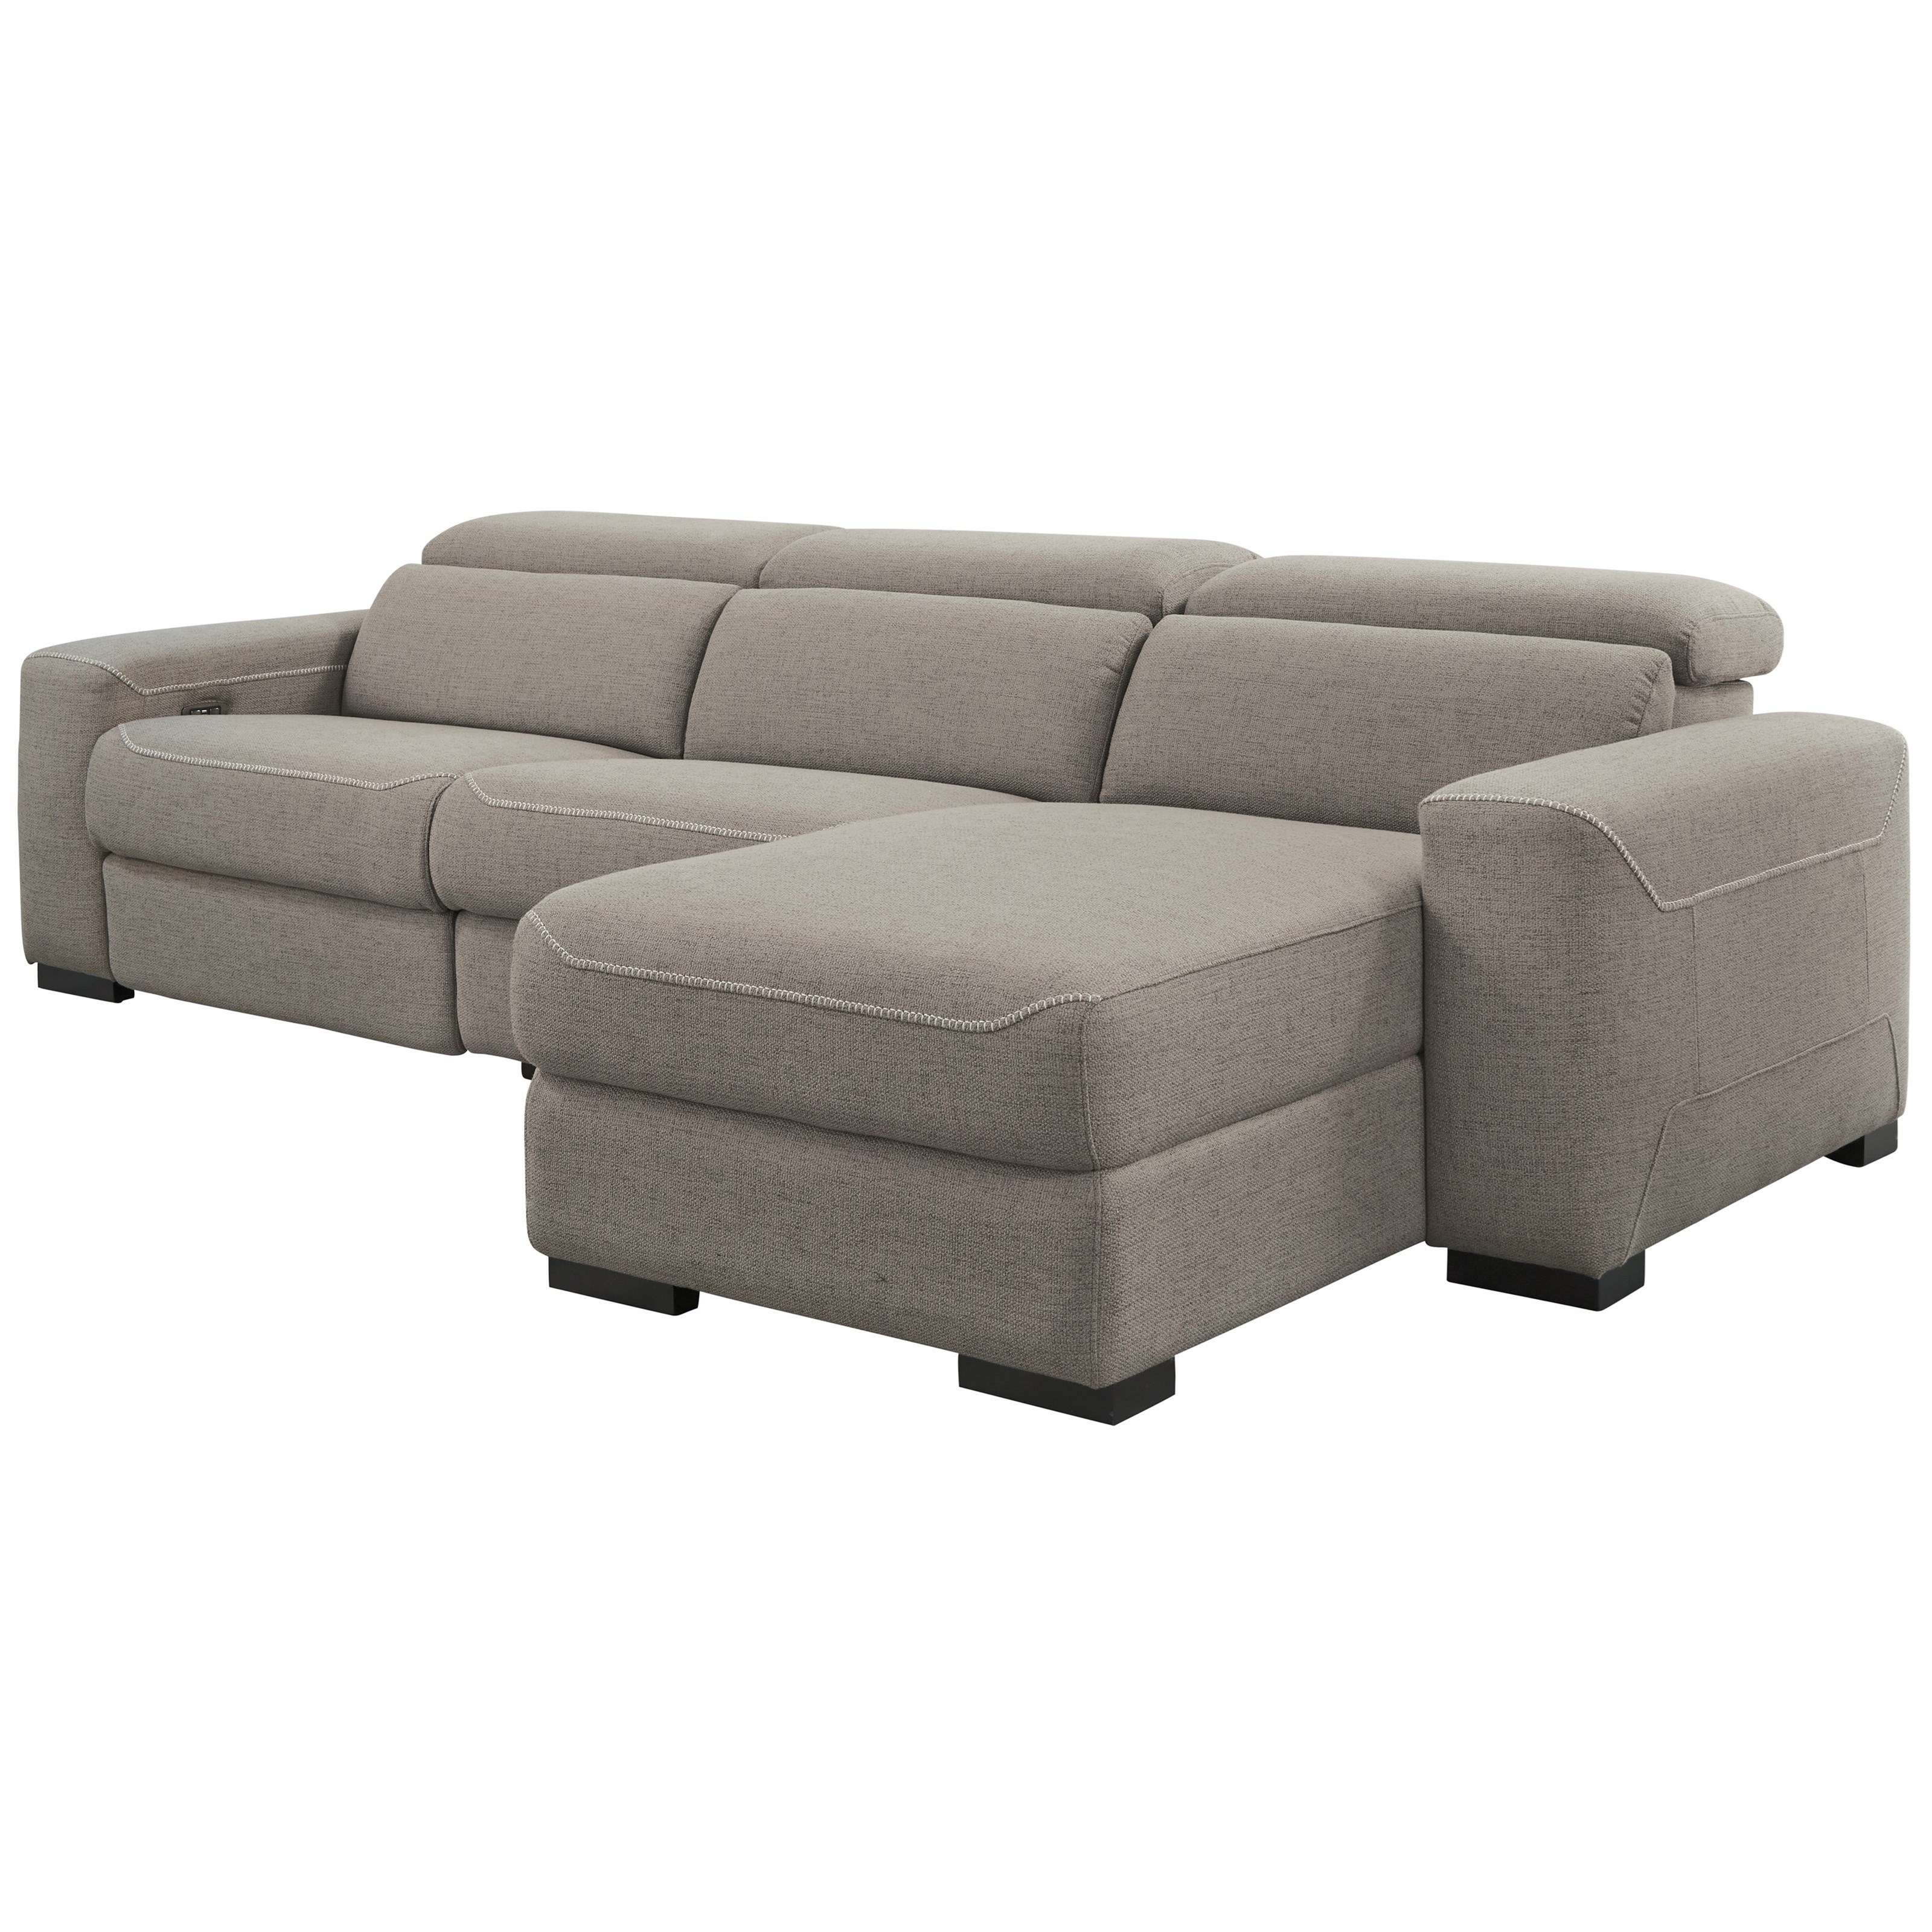 Mabton 3-Piece Power Reclining Sectional w/ Chaise by Ashley (Signature Design) at Johnny Janosik